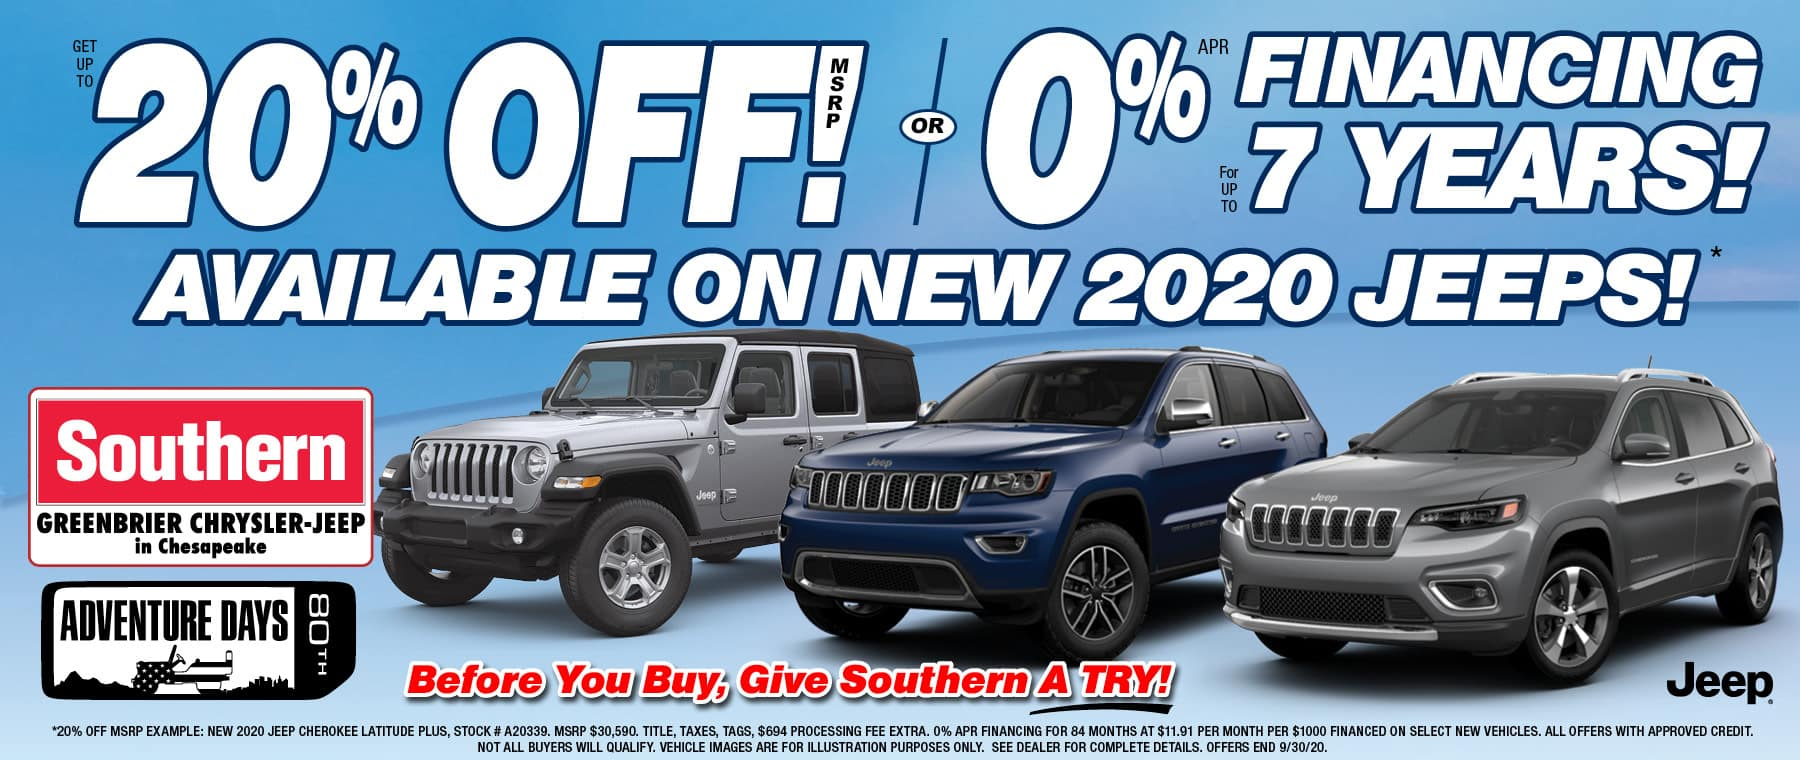 Southern Jeep Chesapeake – Sept 2020